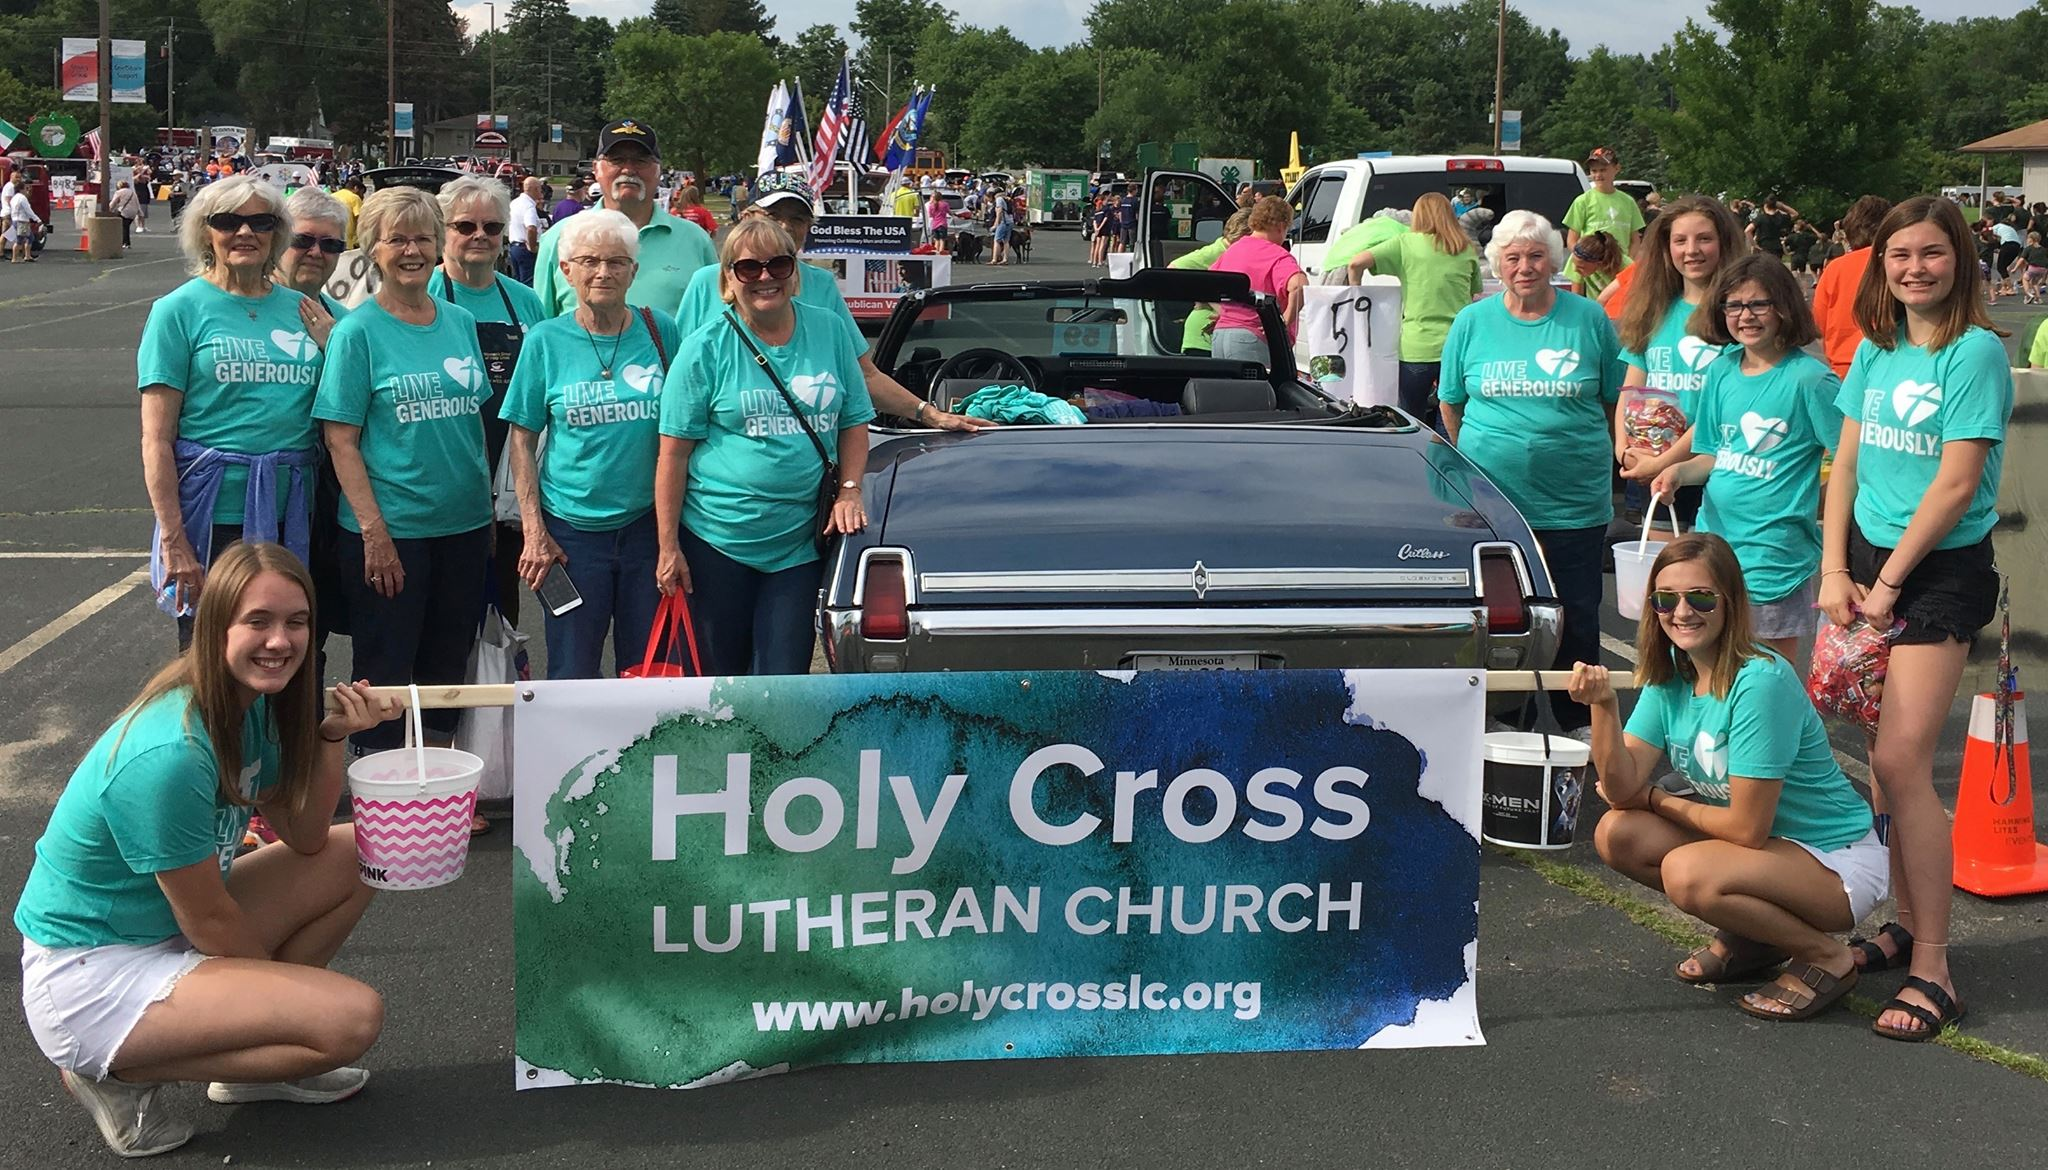 Holy Cross at Oakdale Summerfest Parade. Photo Courtesy of Ann Hagestad.